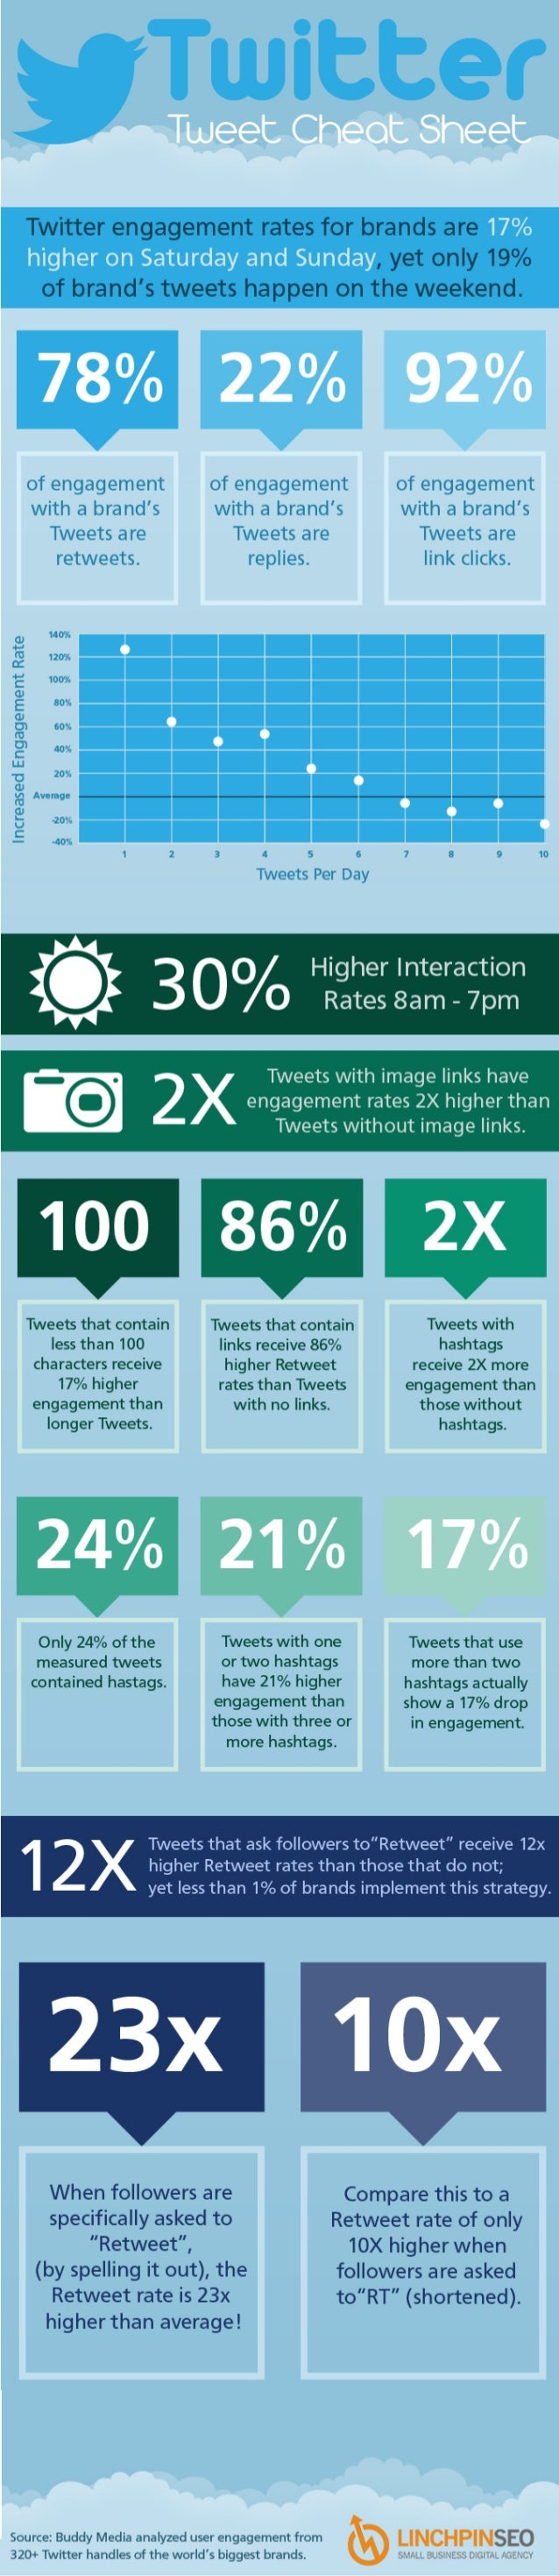 Collaborative IQ with Denise Holt - INFOGRAPHIC Twitter Cheat Sheet